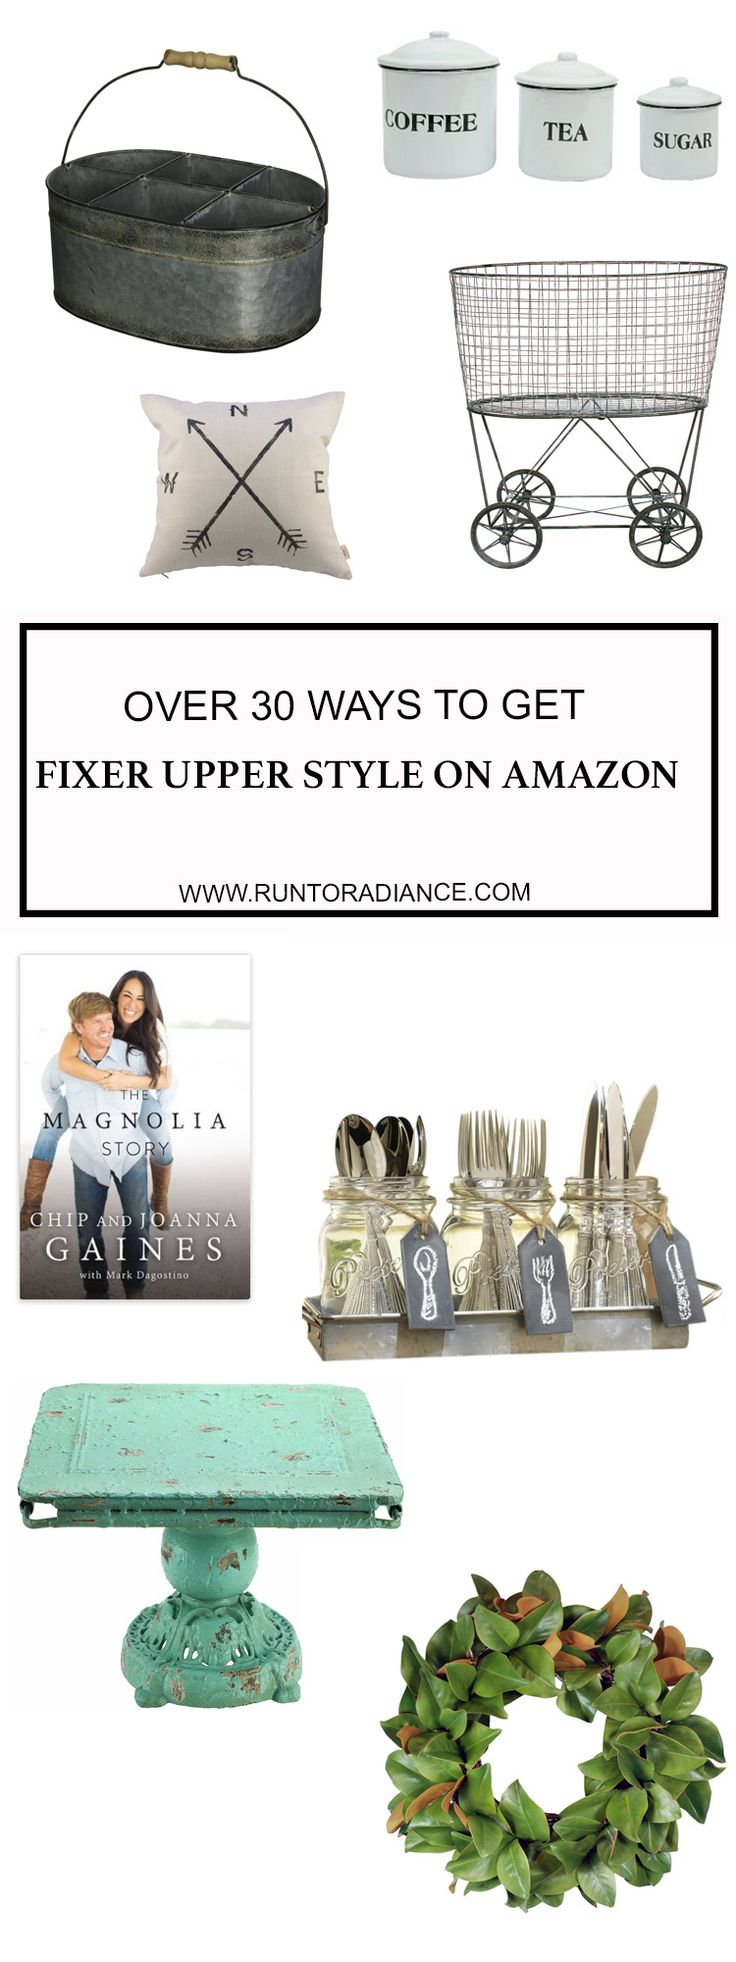 Do you love fixer-upper and want to know what to buy to get fixer upper style? I love amazon for every day items but here are some easy ways to add fixer upper style using amazon.